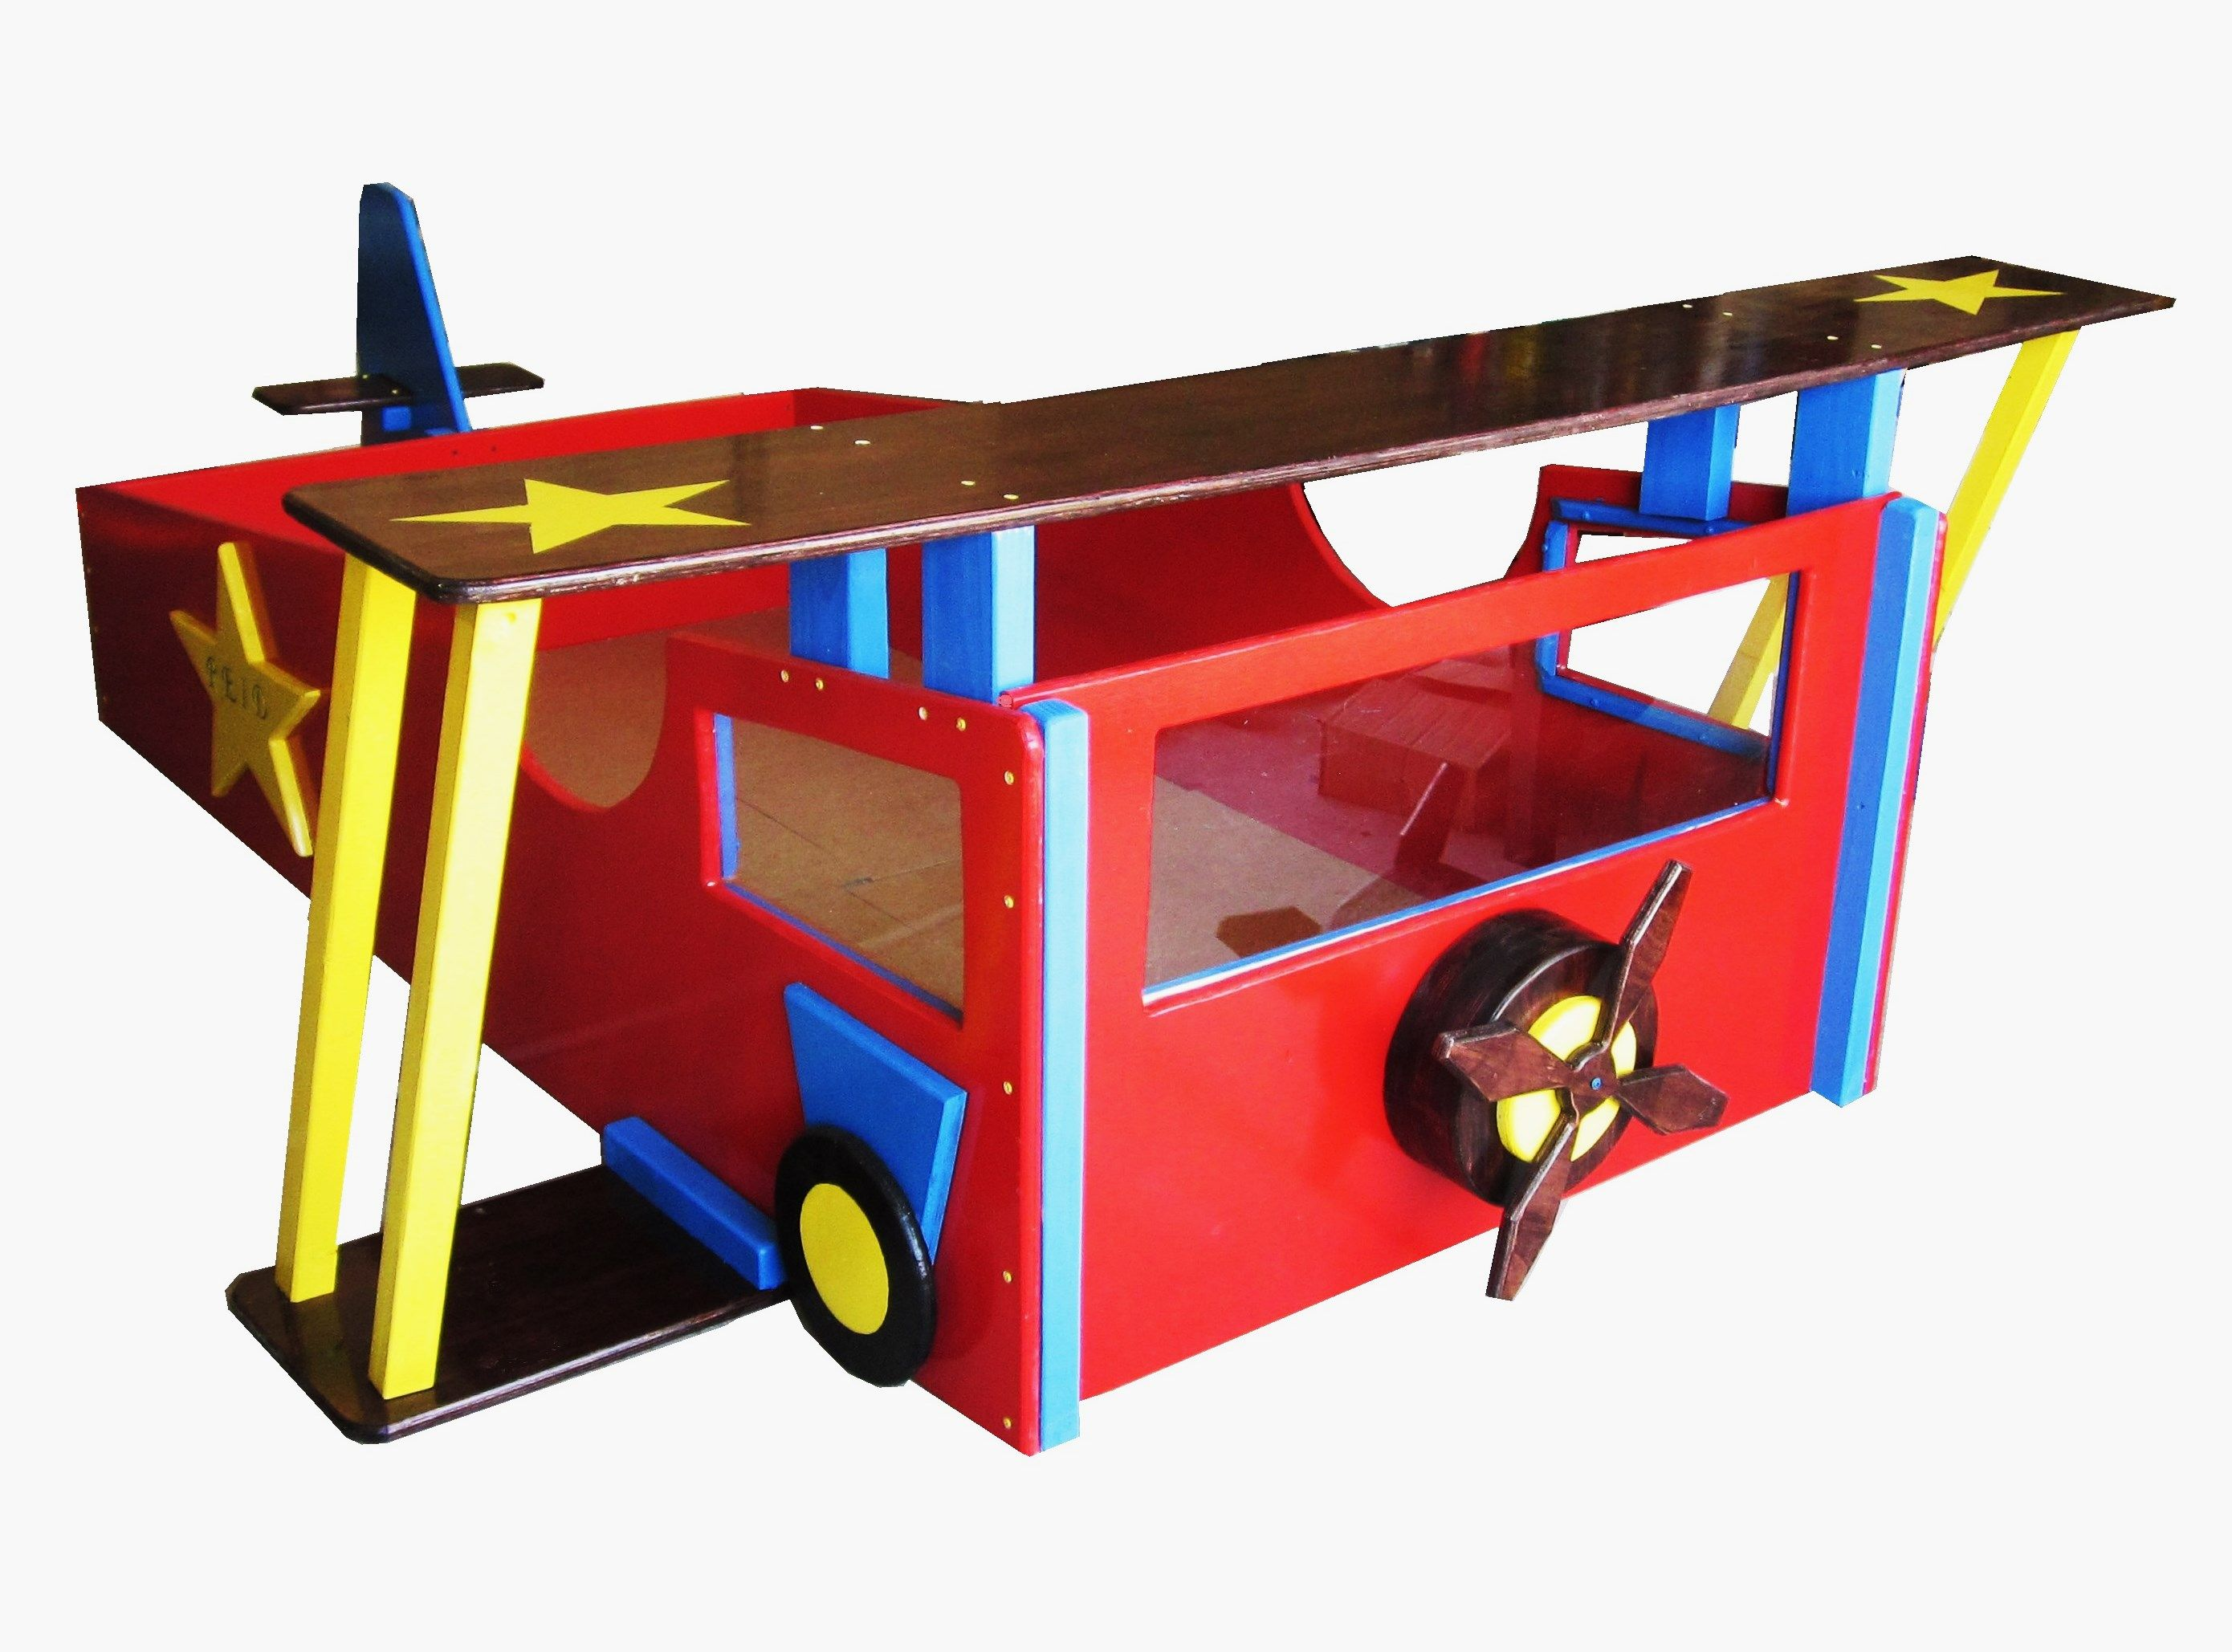 custom made twin bed custom bed frame airplane bed kids bed - Twin Bed Frames For Kids